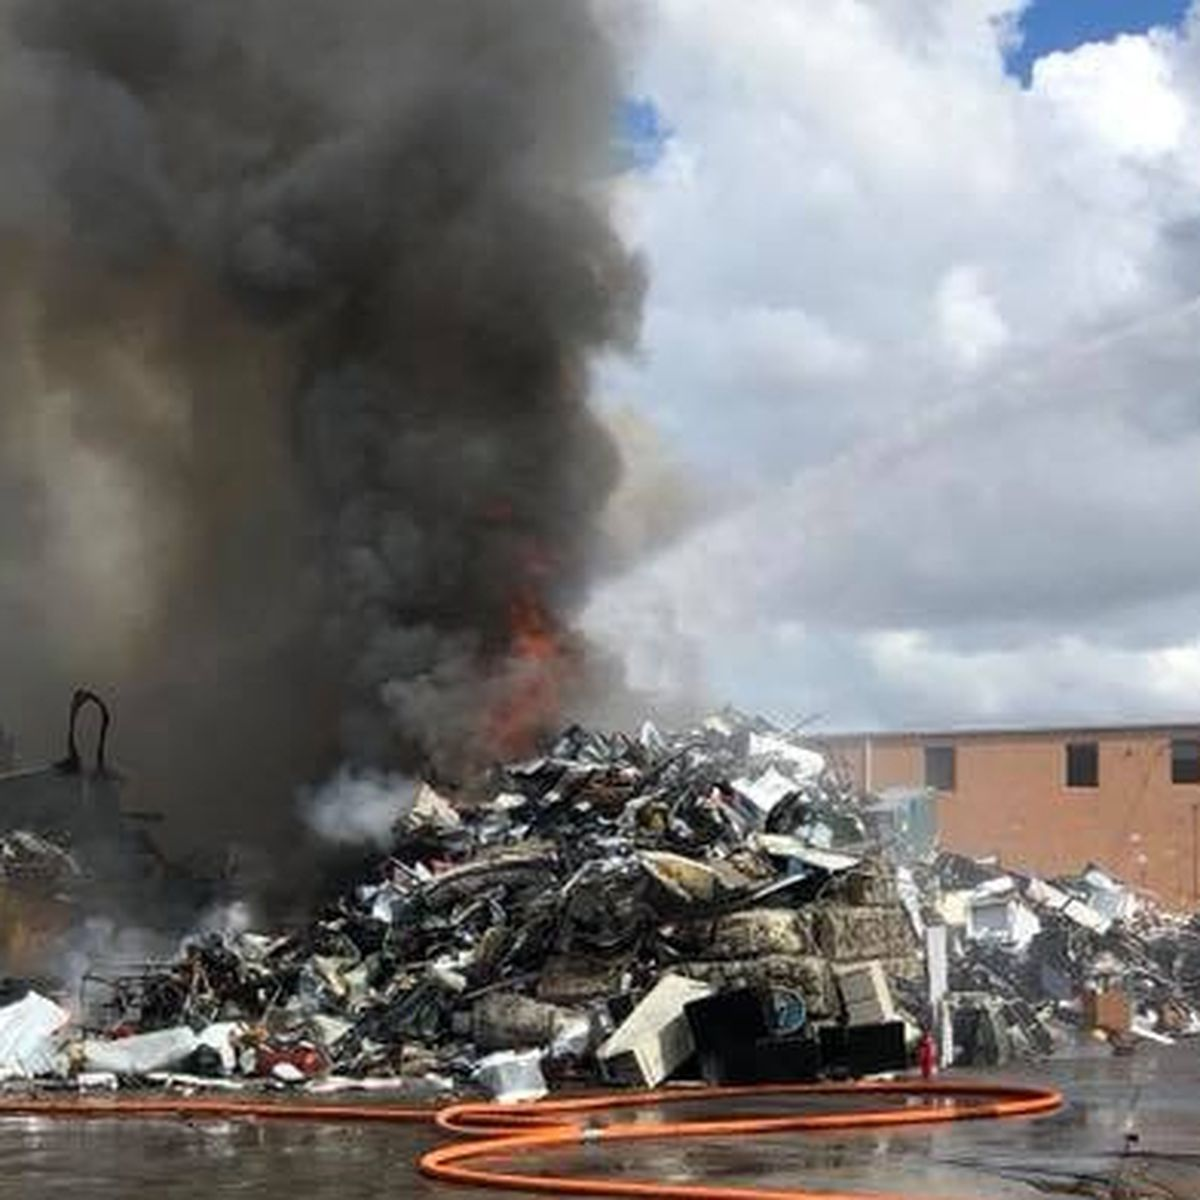 Two-alarm fire at metal and recycling plant sends large plume of smoke over Sarasota